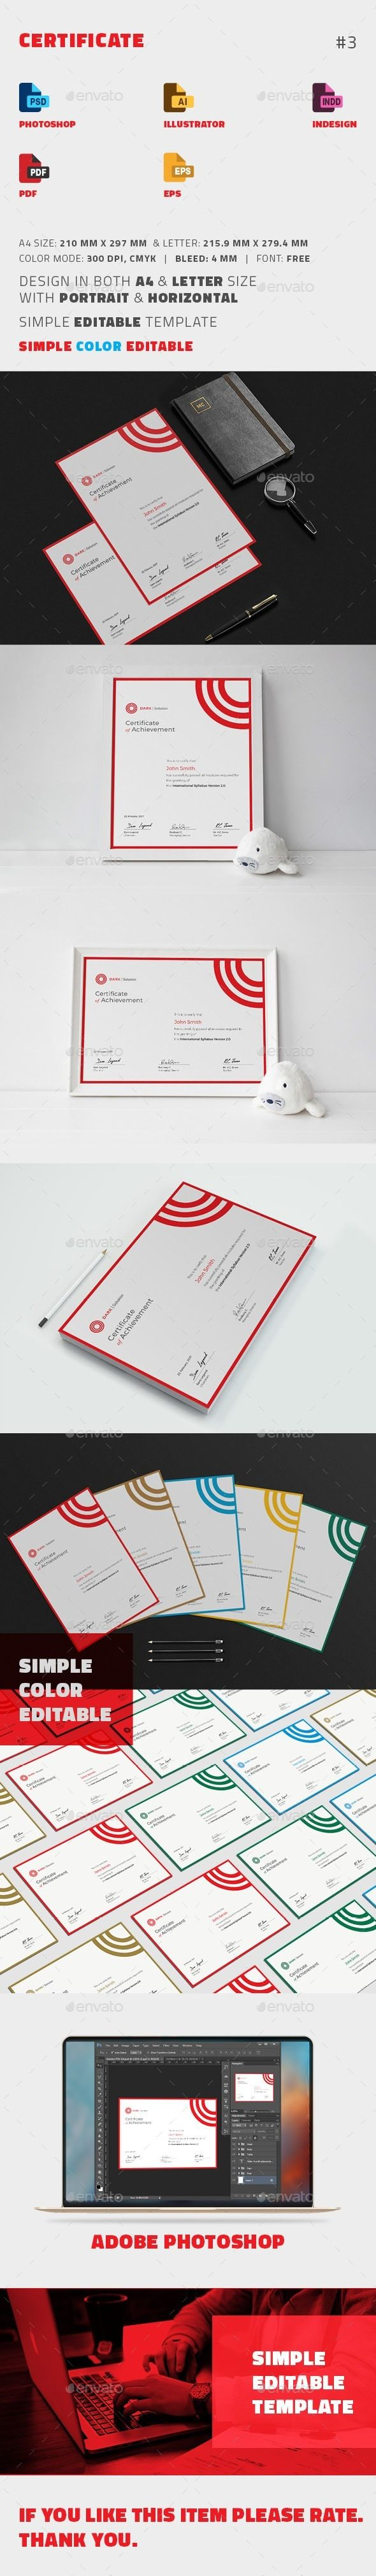 #Certificate - Certificates #Stationery Download here: https://graphicriver.net/item/certificate/19505537?ref=alena994